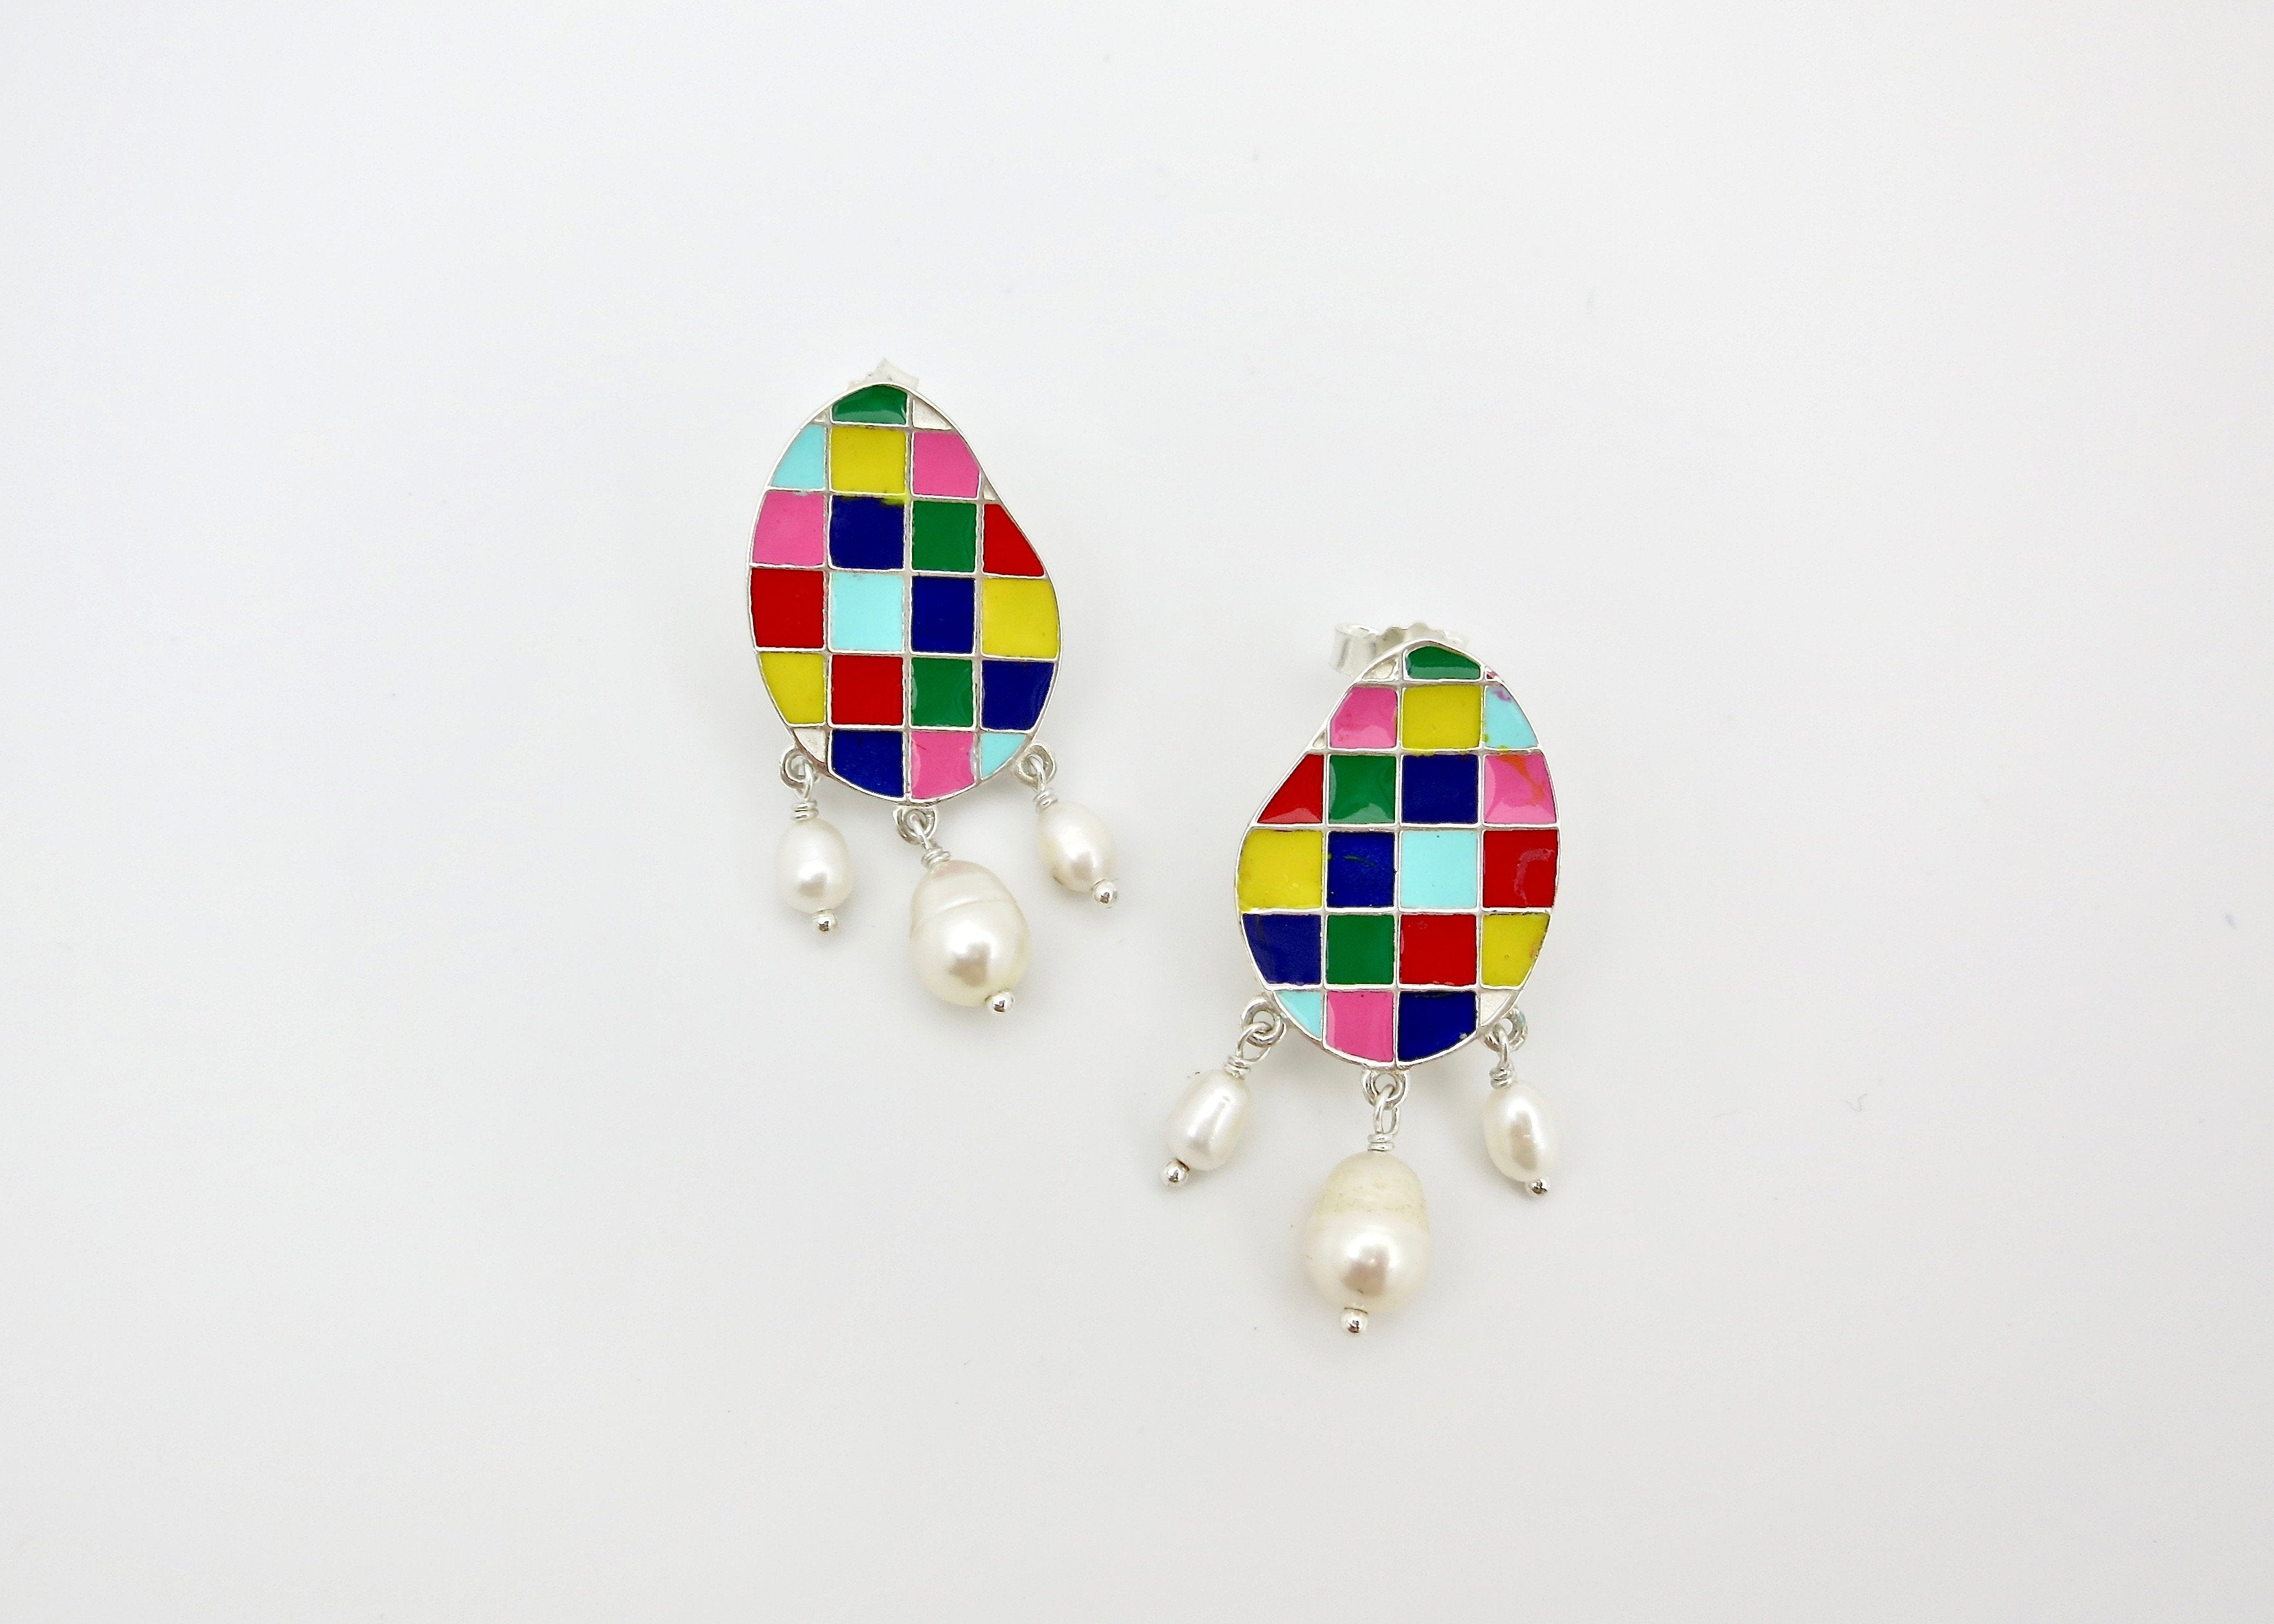 Stunning, colour grid, pearl drop 'varnin' earrings - Craft Stories Handmade, contemporary, personal and home accessories. Designed in California. Handcrafted in India. Traditional craftsmanship meets modern aesthetics. Sustainable design ethos, fair trade, conscious, artisanal jewelry and home decor. Objects with a story. Unique and on-trend.